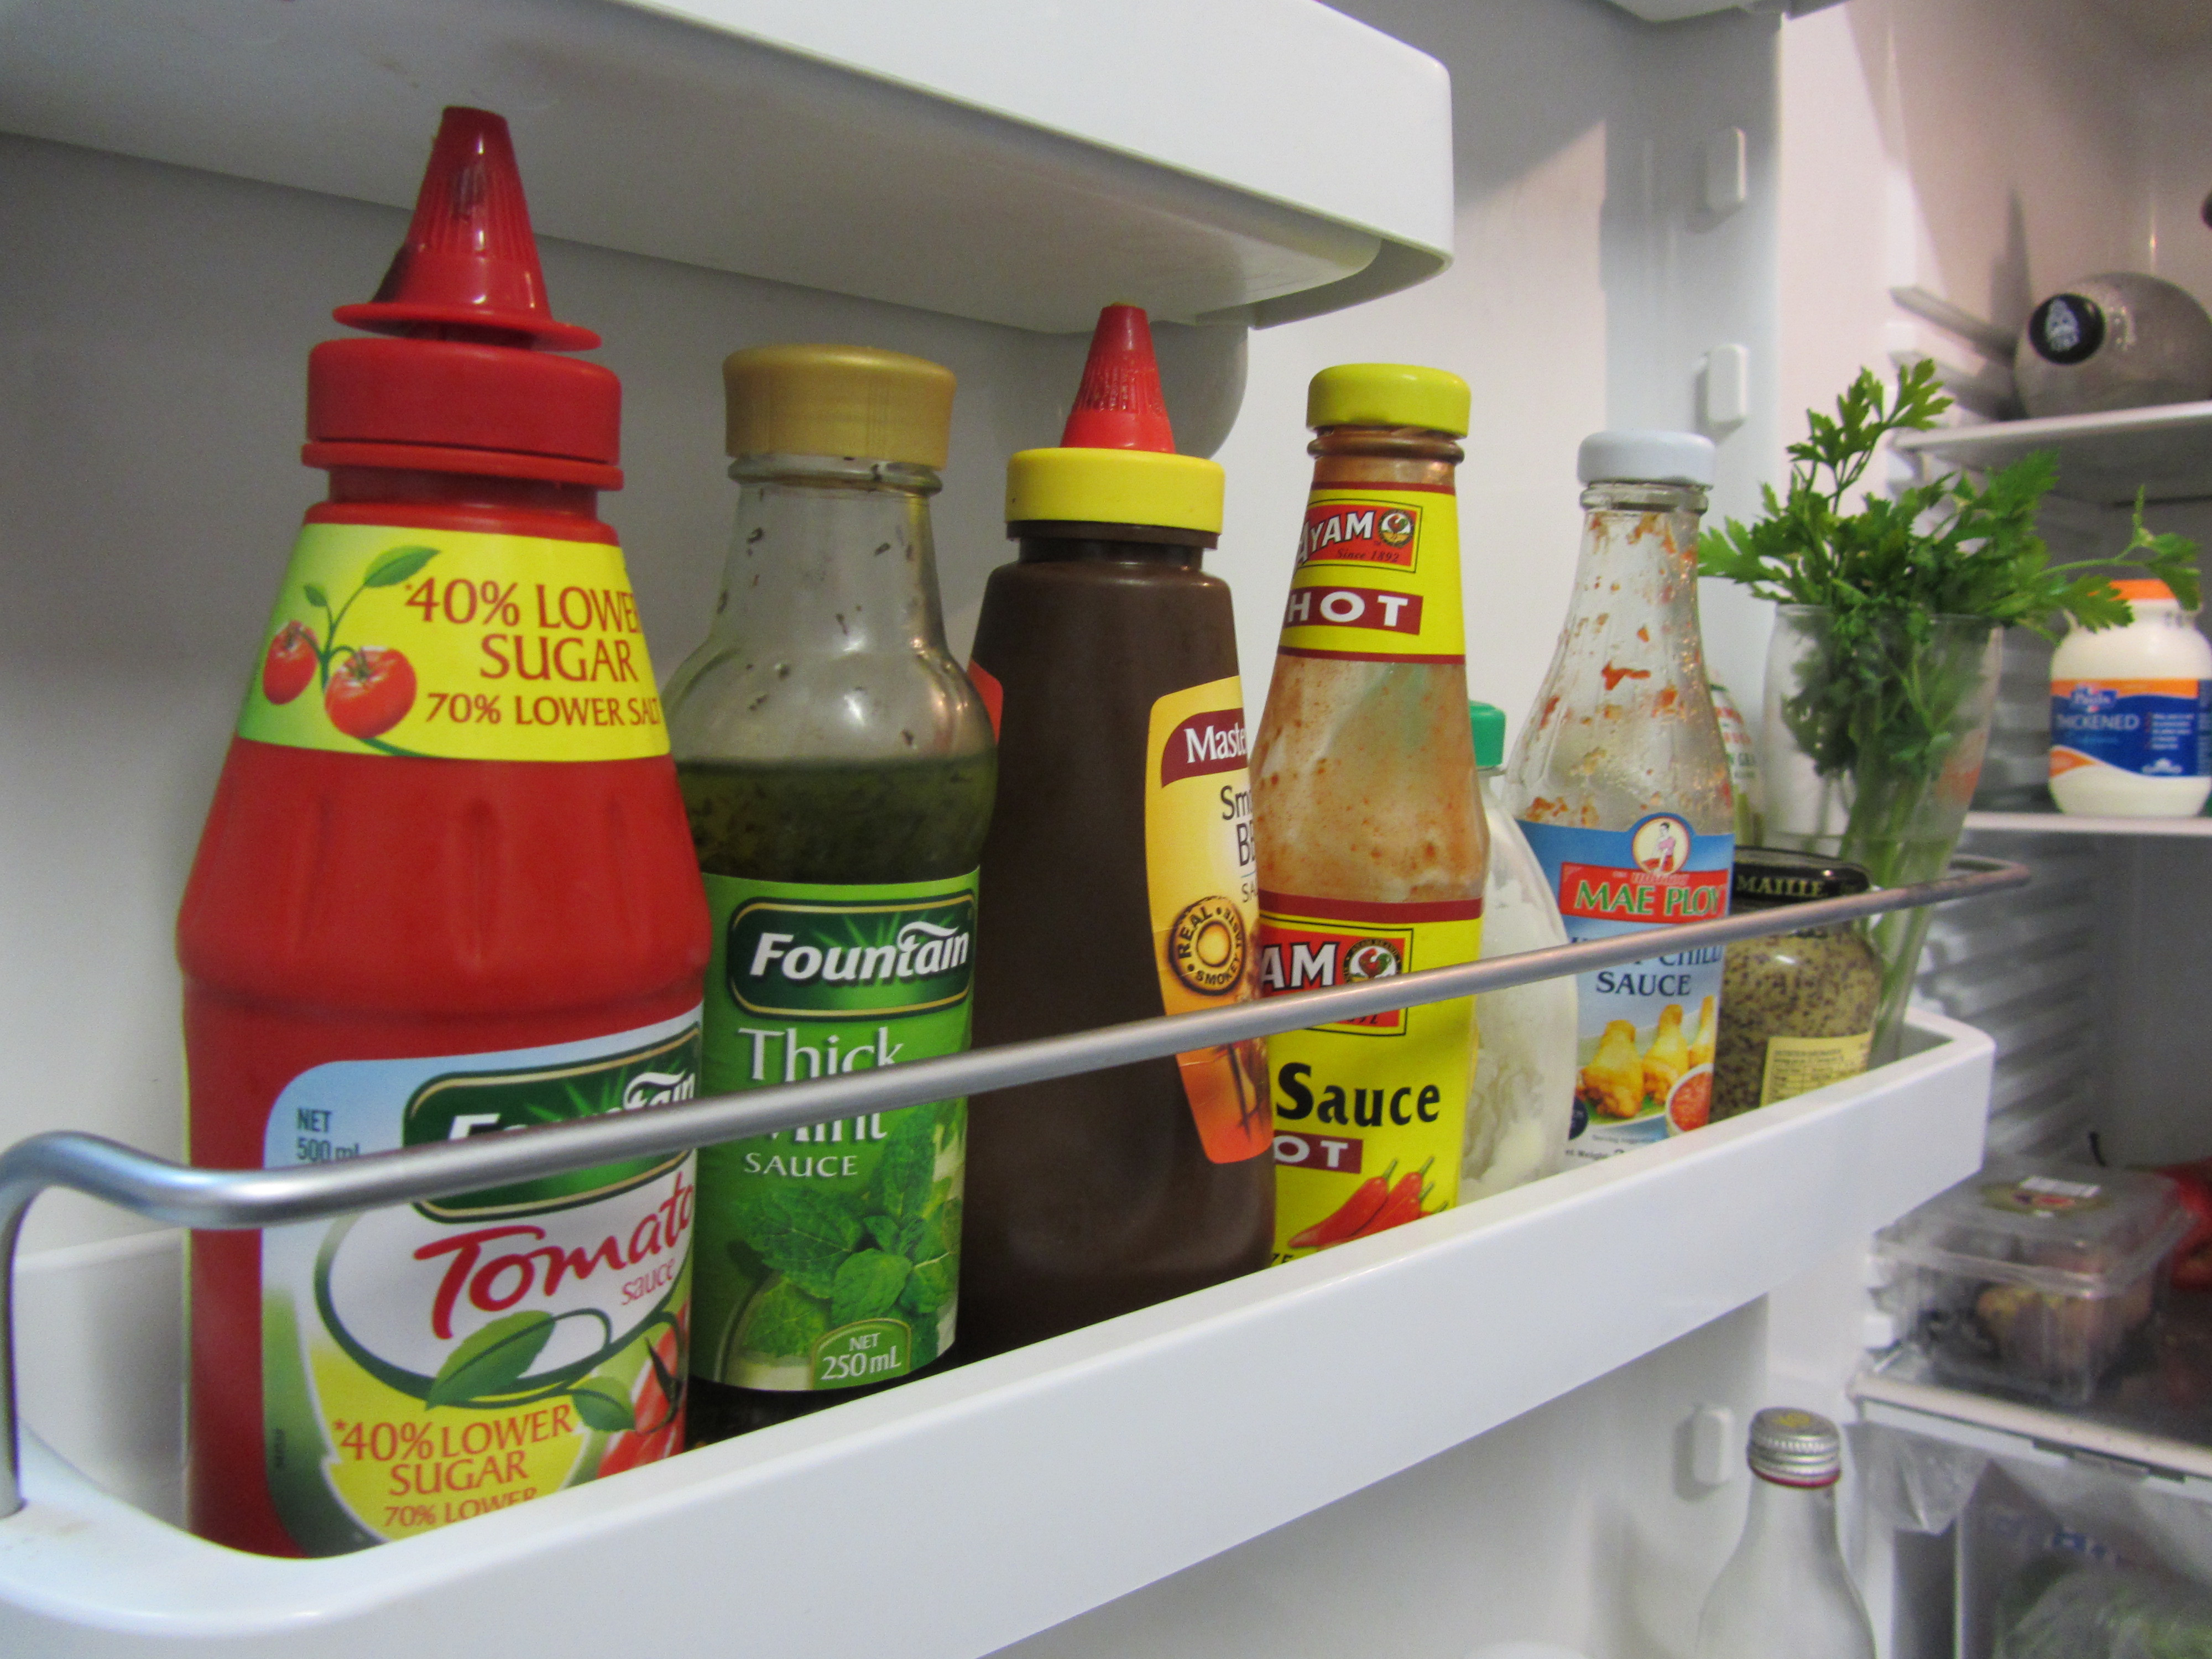 How Long Does Tomato Sauce Last In The Fridge  Tomato sauce in the fridge Appliances line Blog